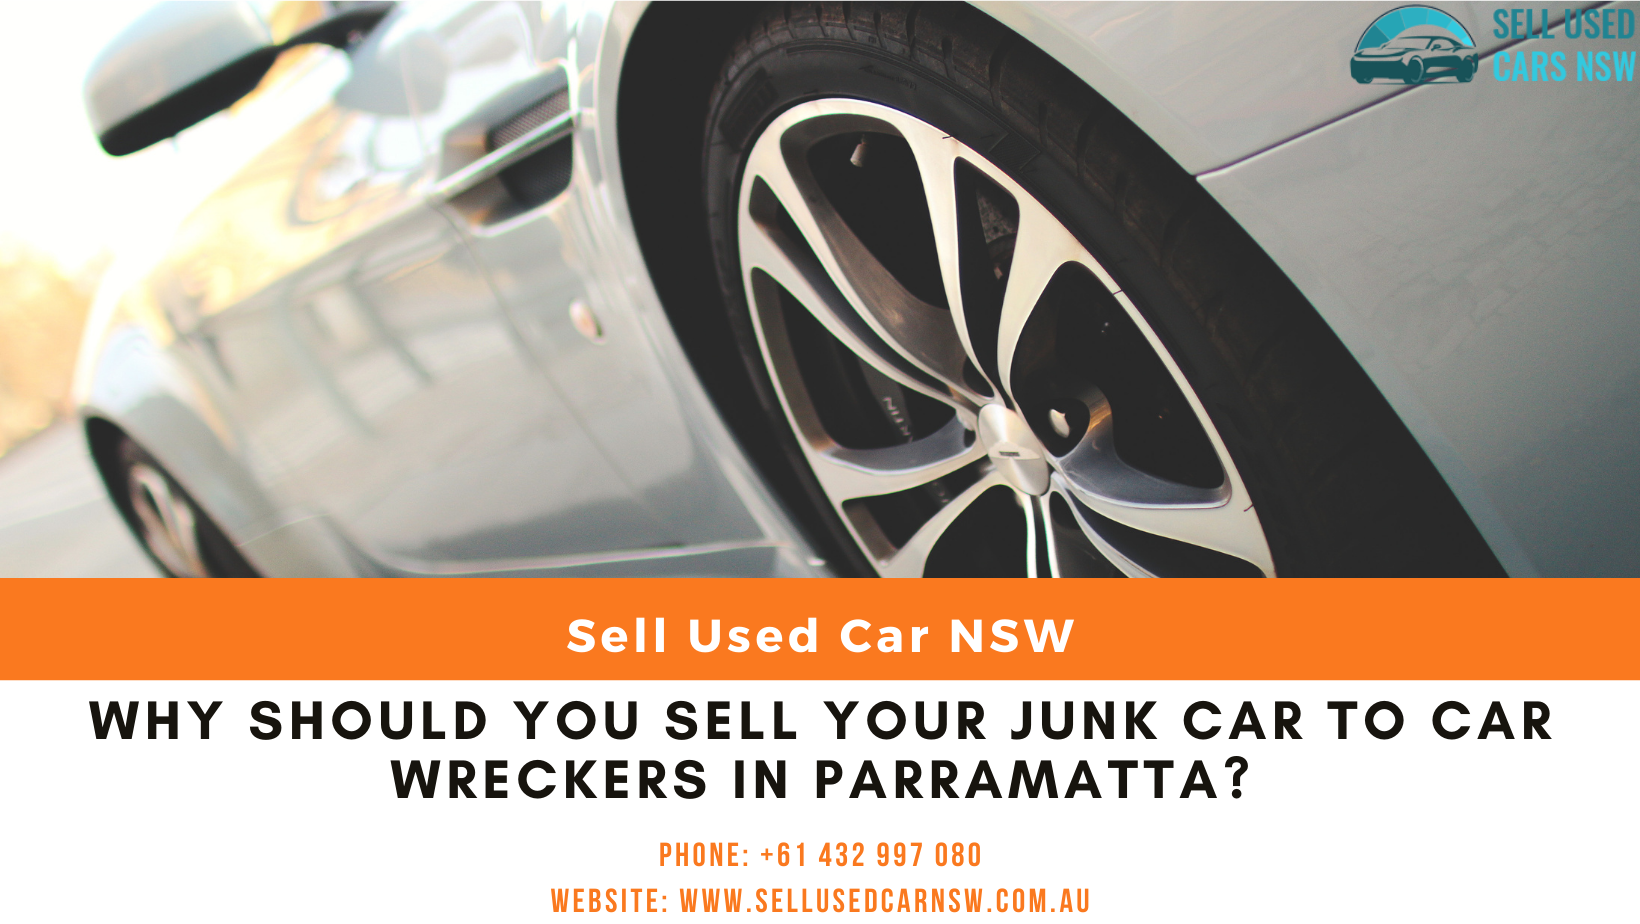 Why Should You Sell Your Junk Car To Car Wreckers in Parramatta?